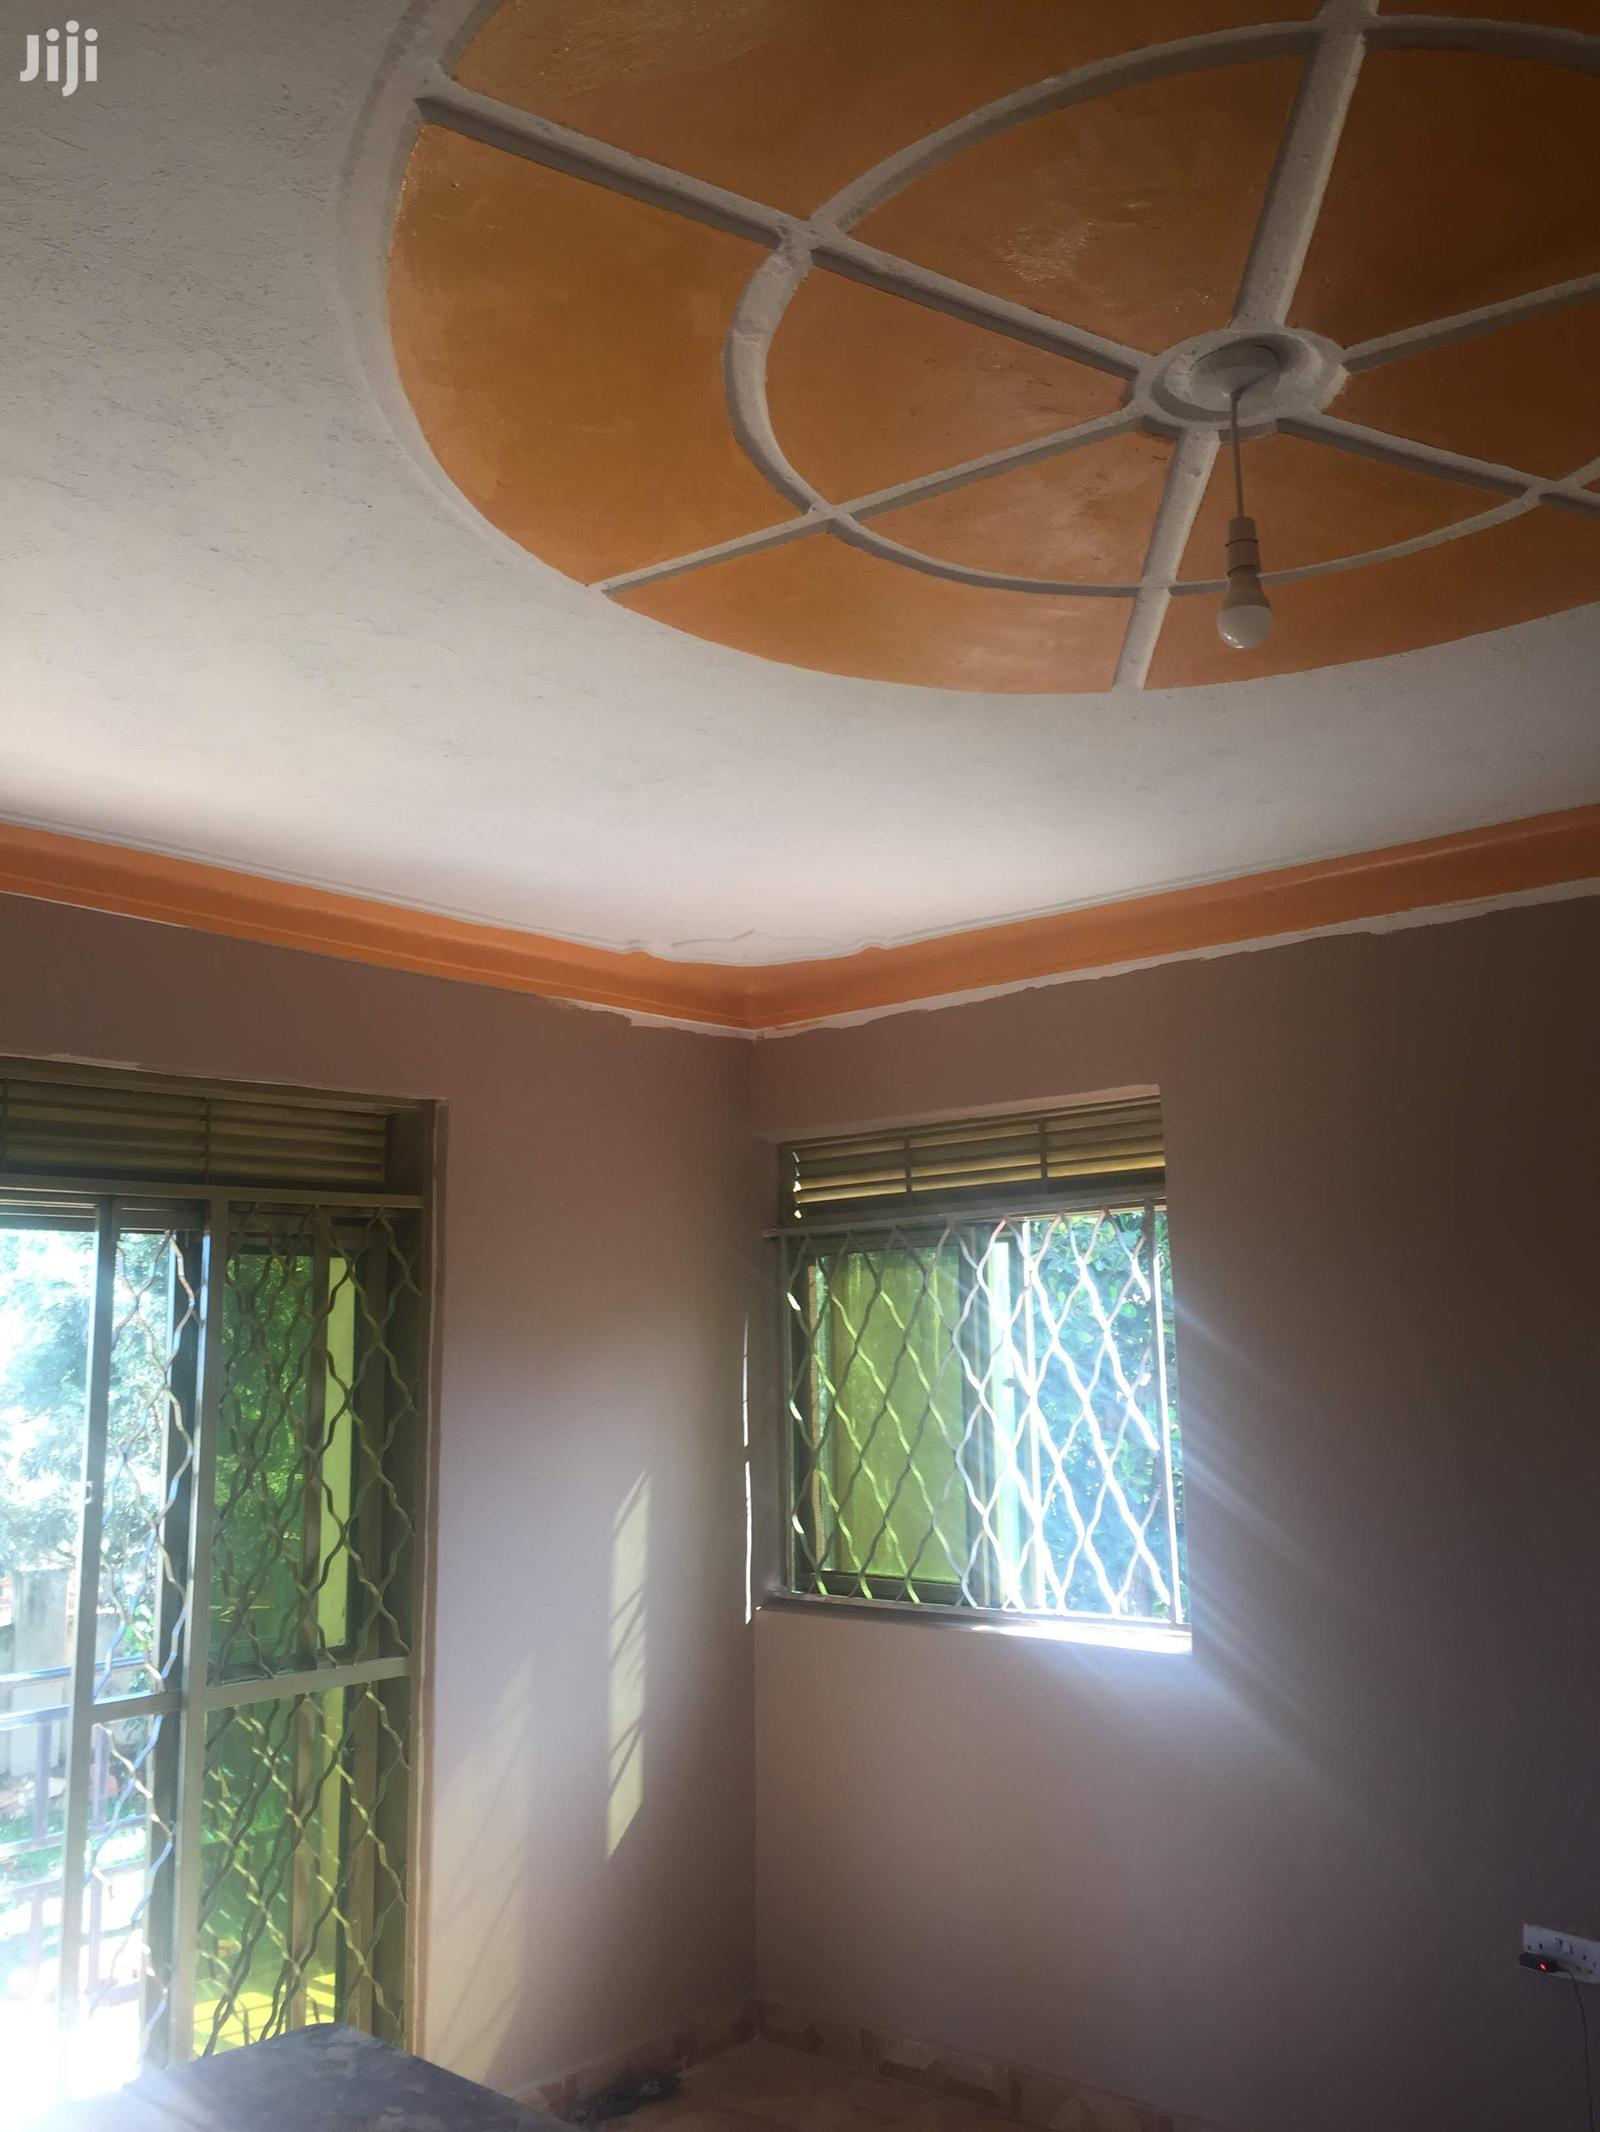 A 4 Bed Apartment to Rent | Houses & Apartments For Rent for sale in Kampala, Central Region, Uganda